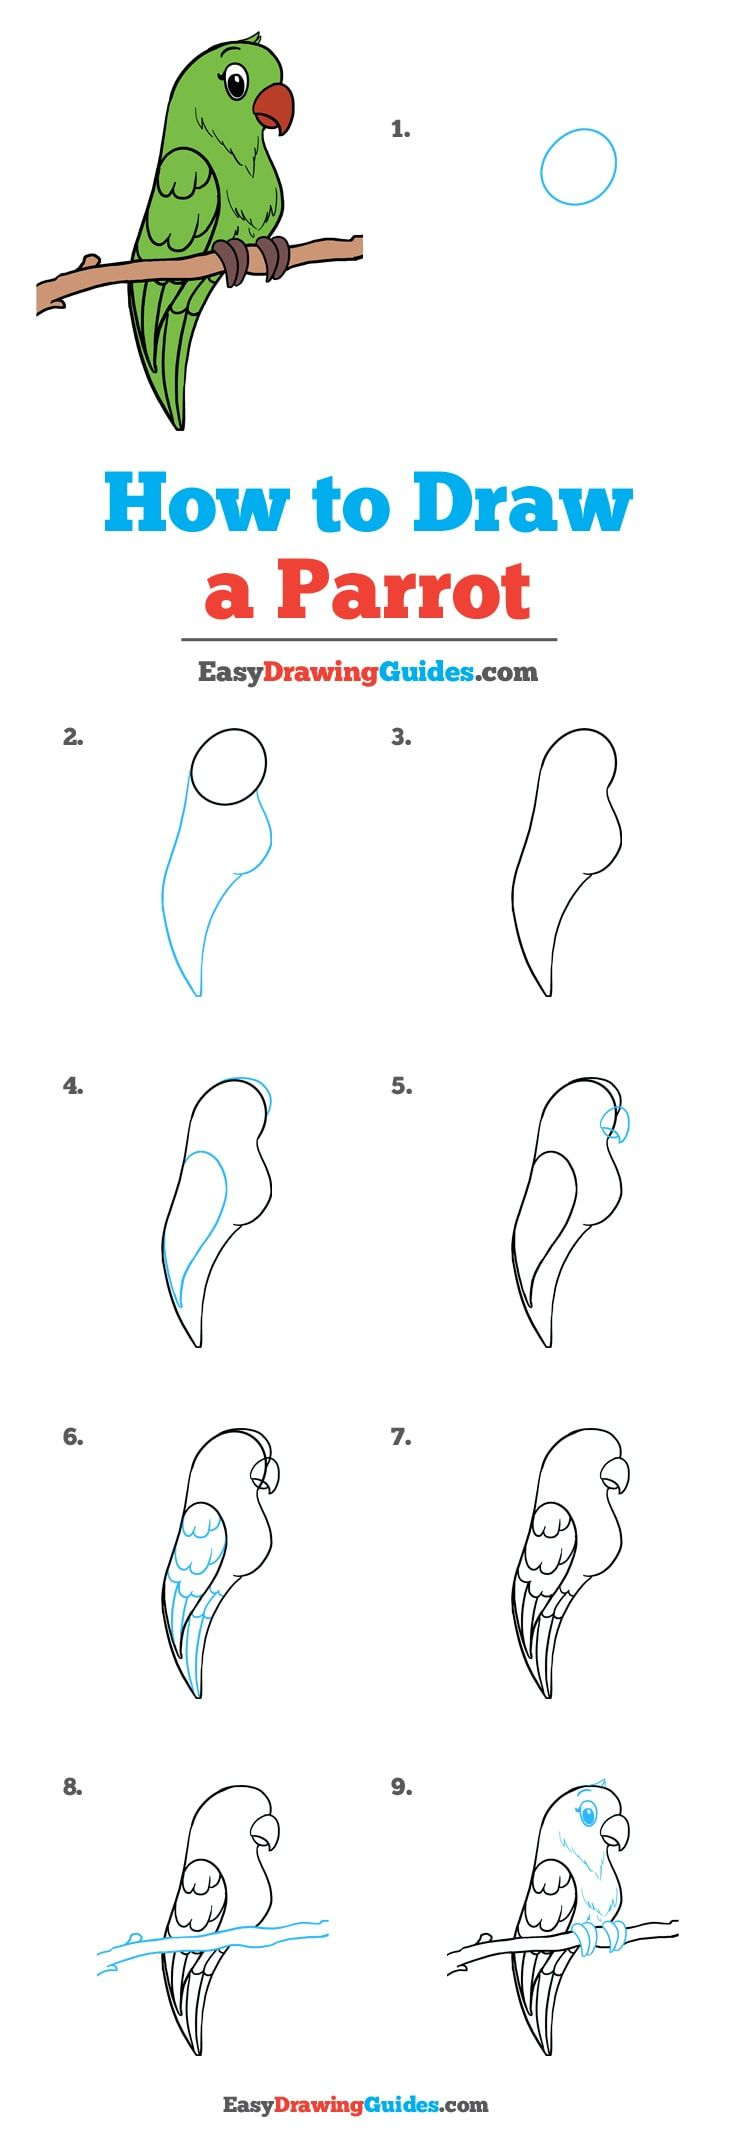 How To Draw A Parrot Really Easy Drawing Tutorial Drawing Tutorial Drawing Tutorials For Kids Drawing Tutorial Easy